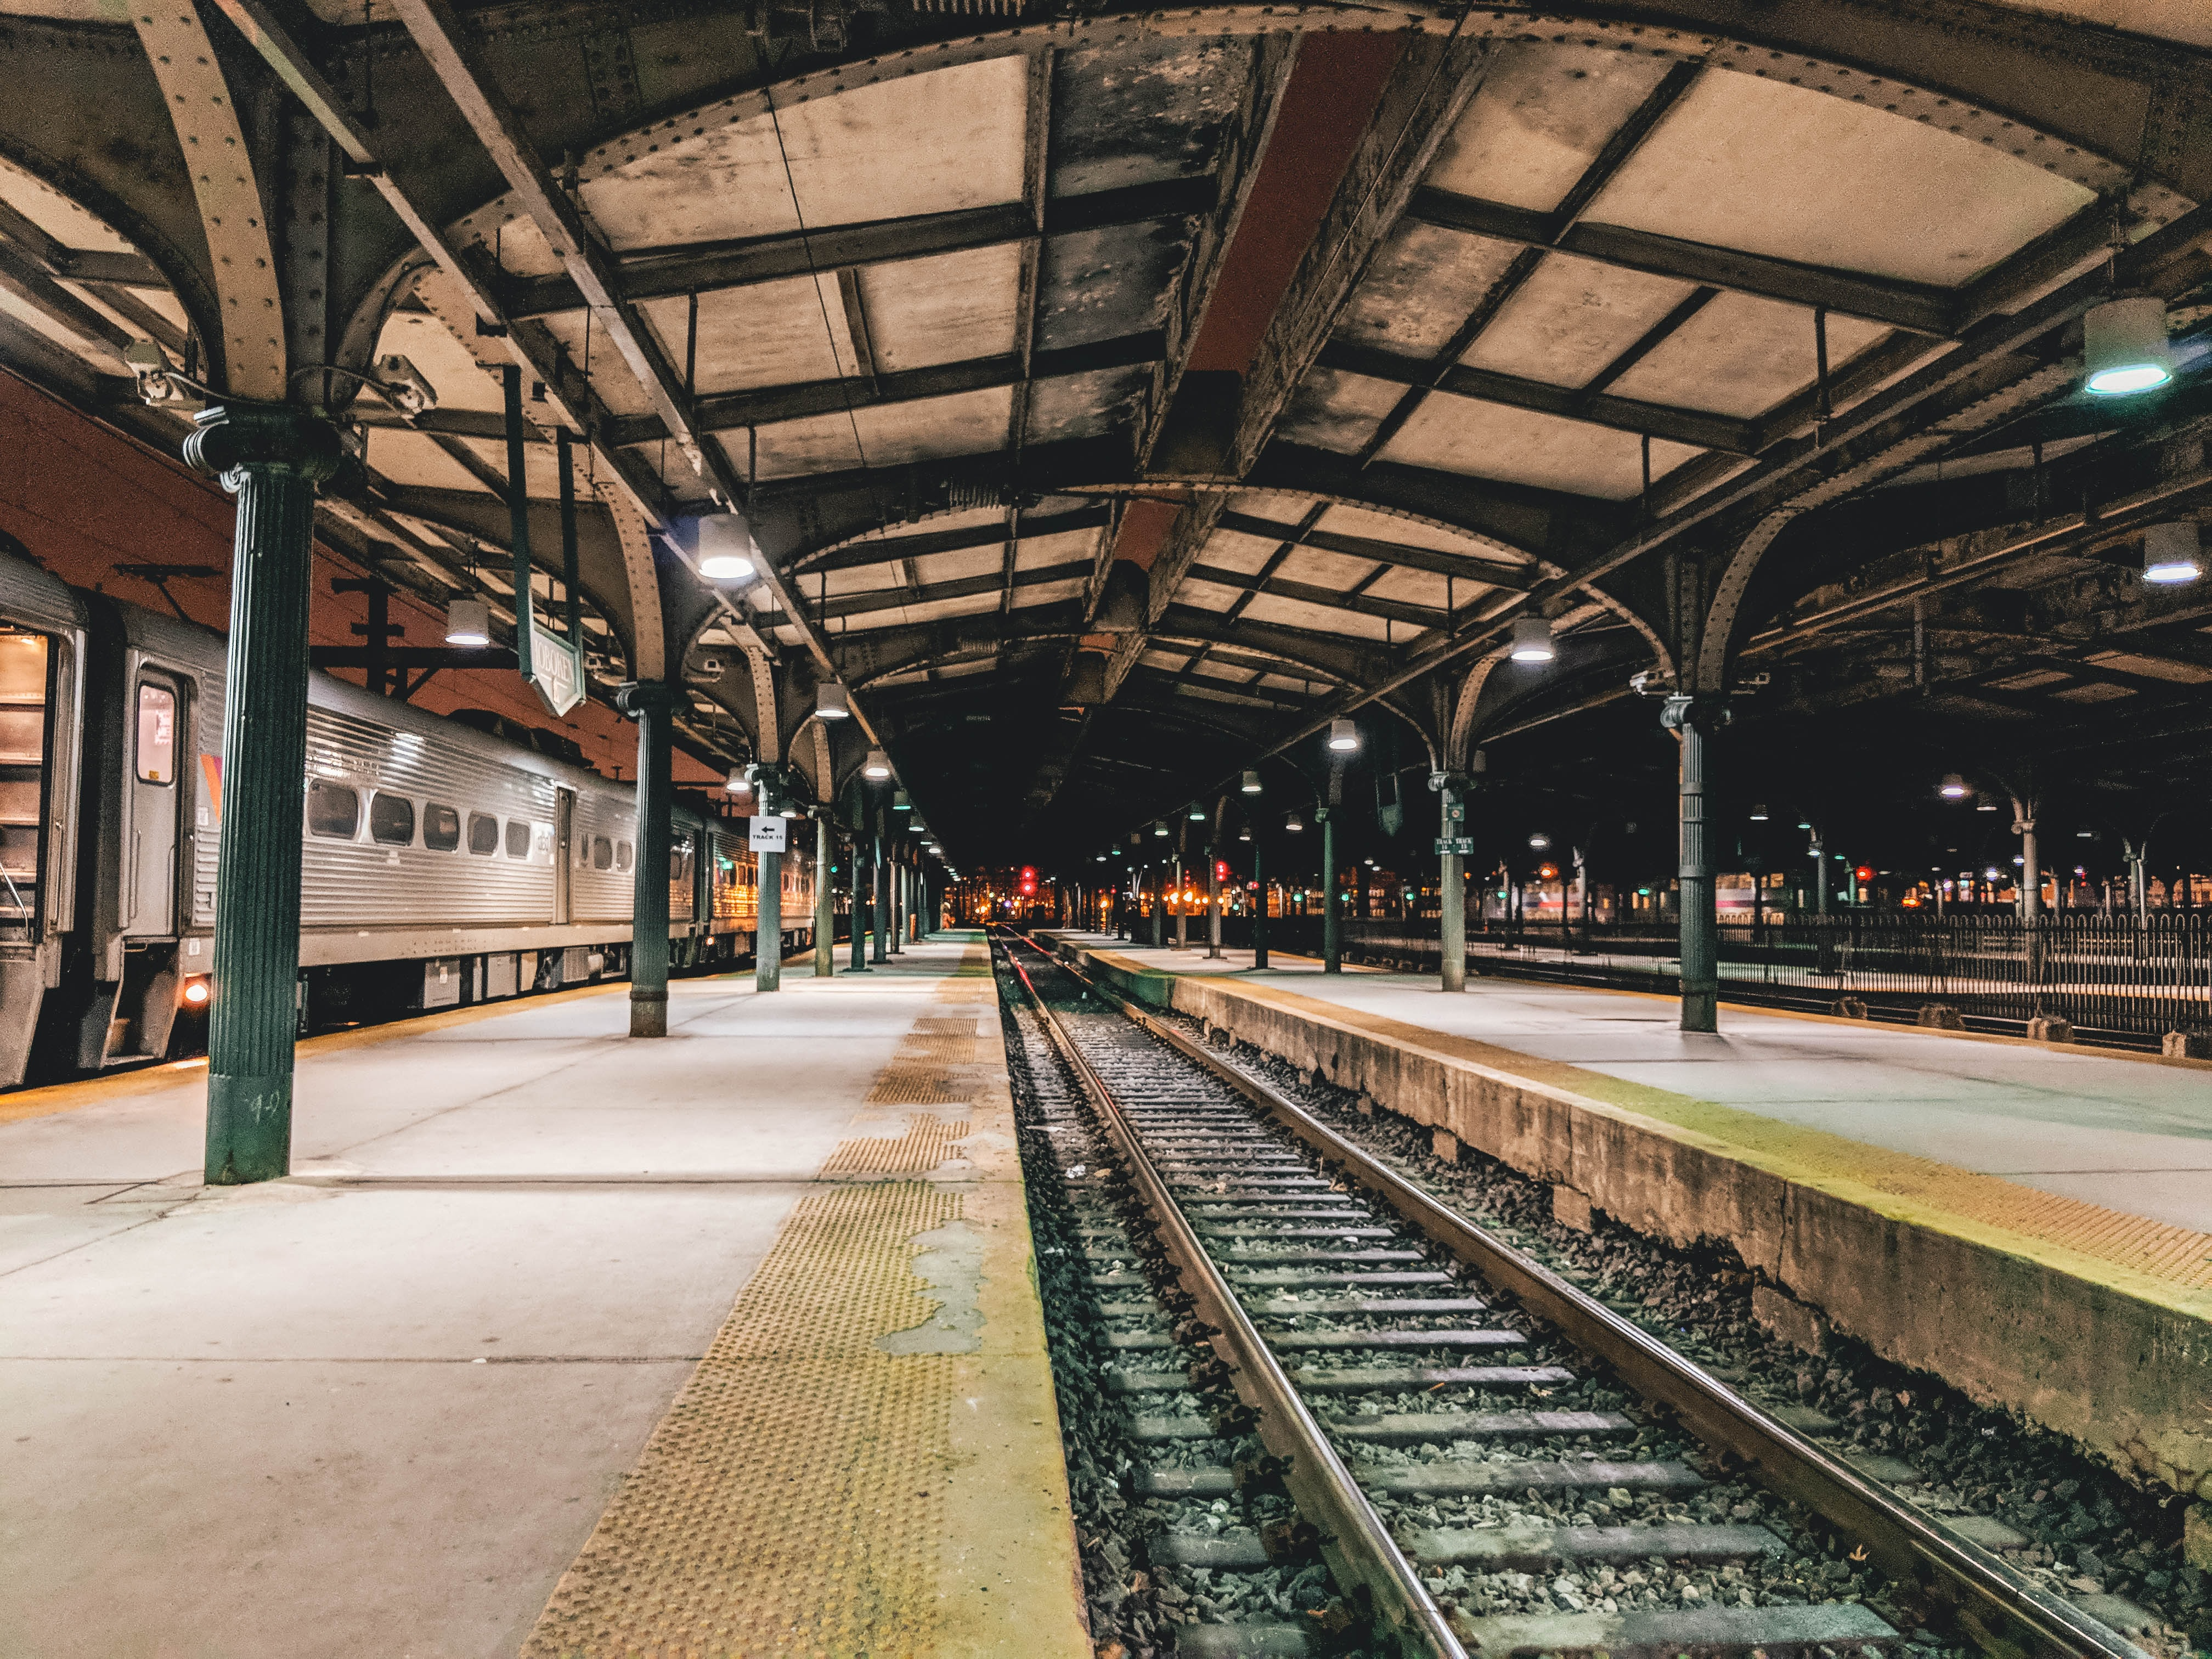 photo of empty train station during nighttime